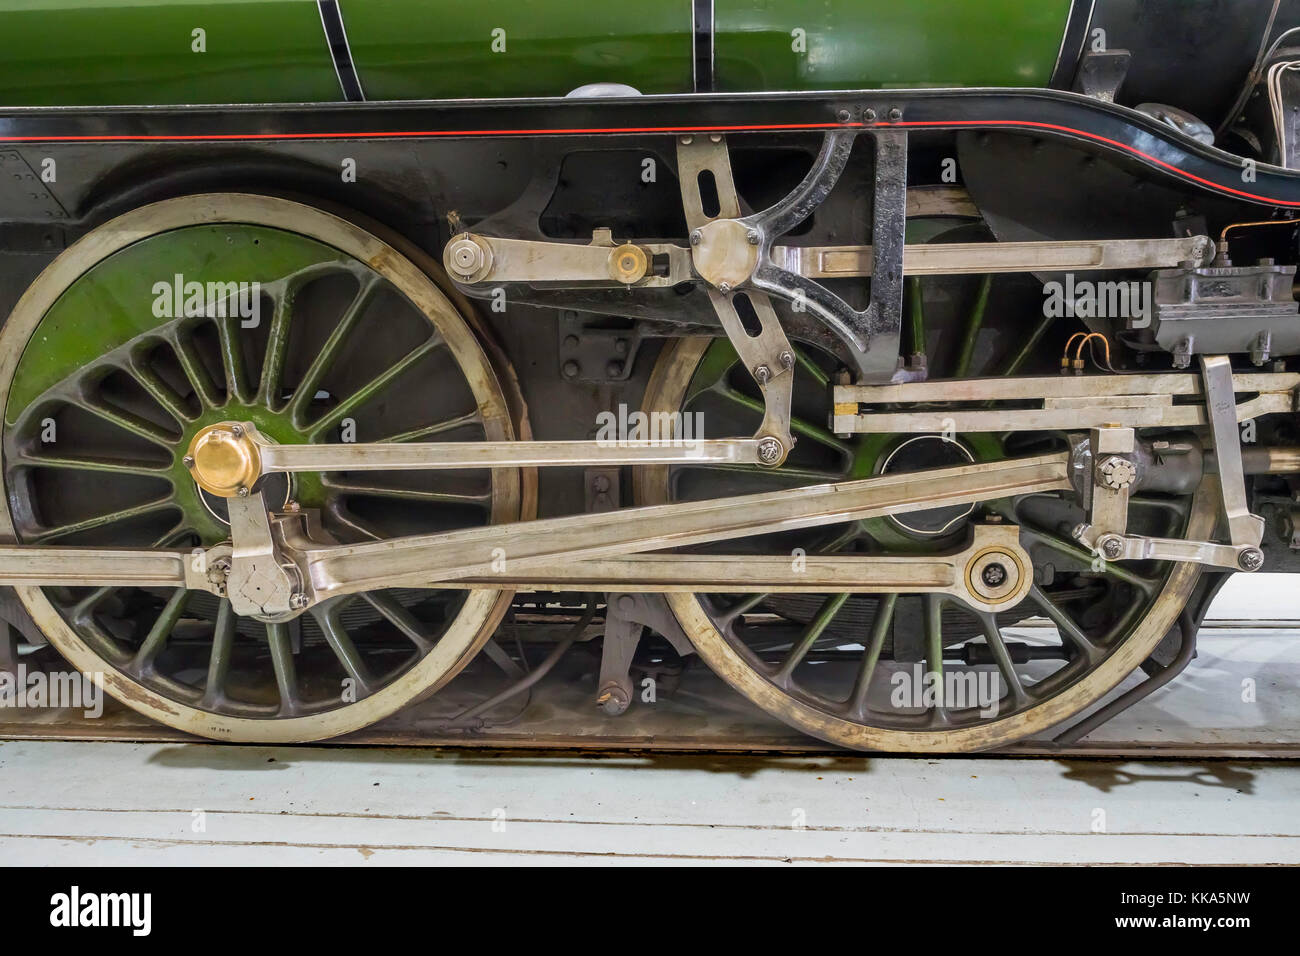 Detail of valve gear on ex-LNER V2 class steam locomotive engine Green Arrow on display at the NRM Shildon UK - Stock Image